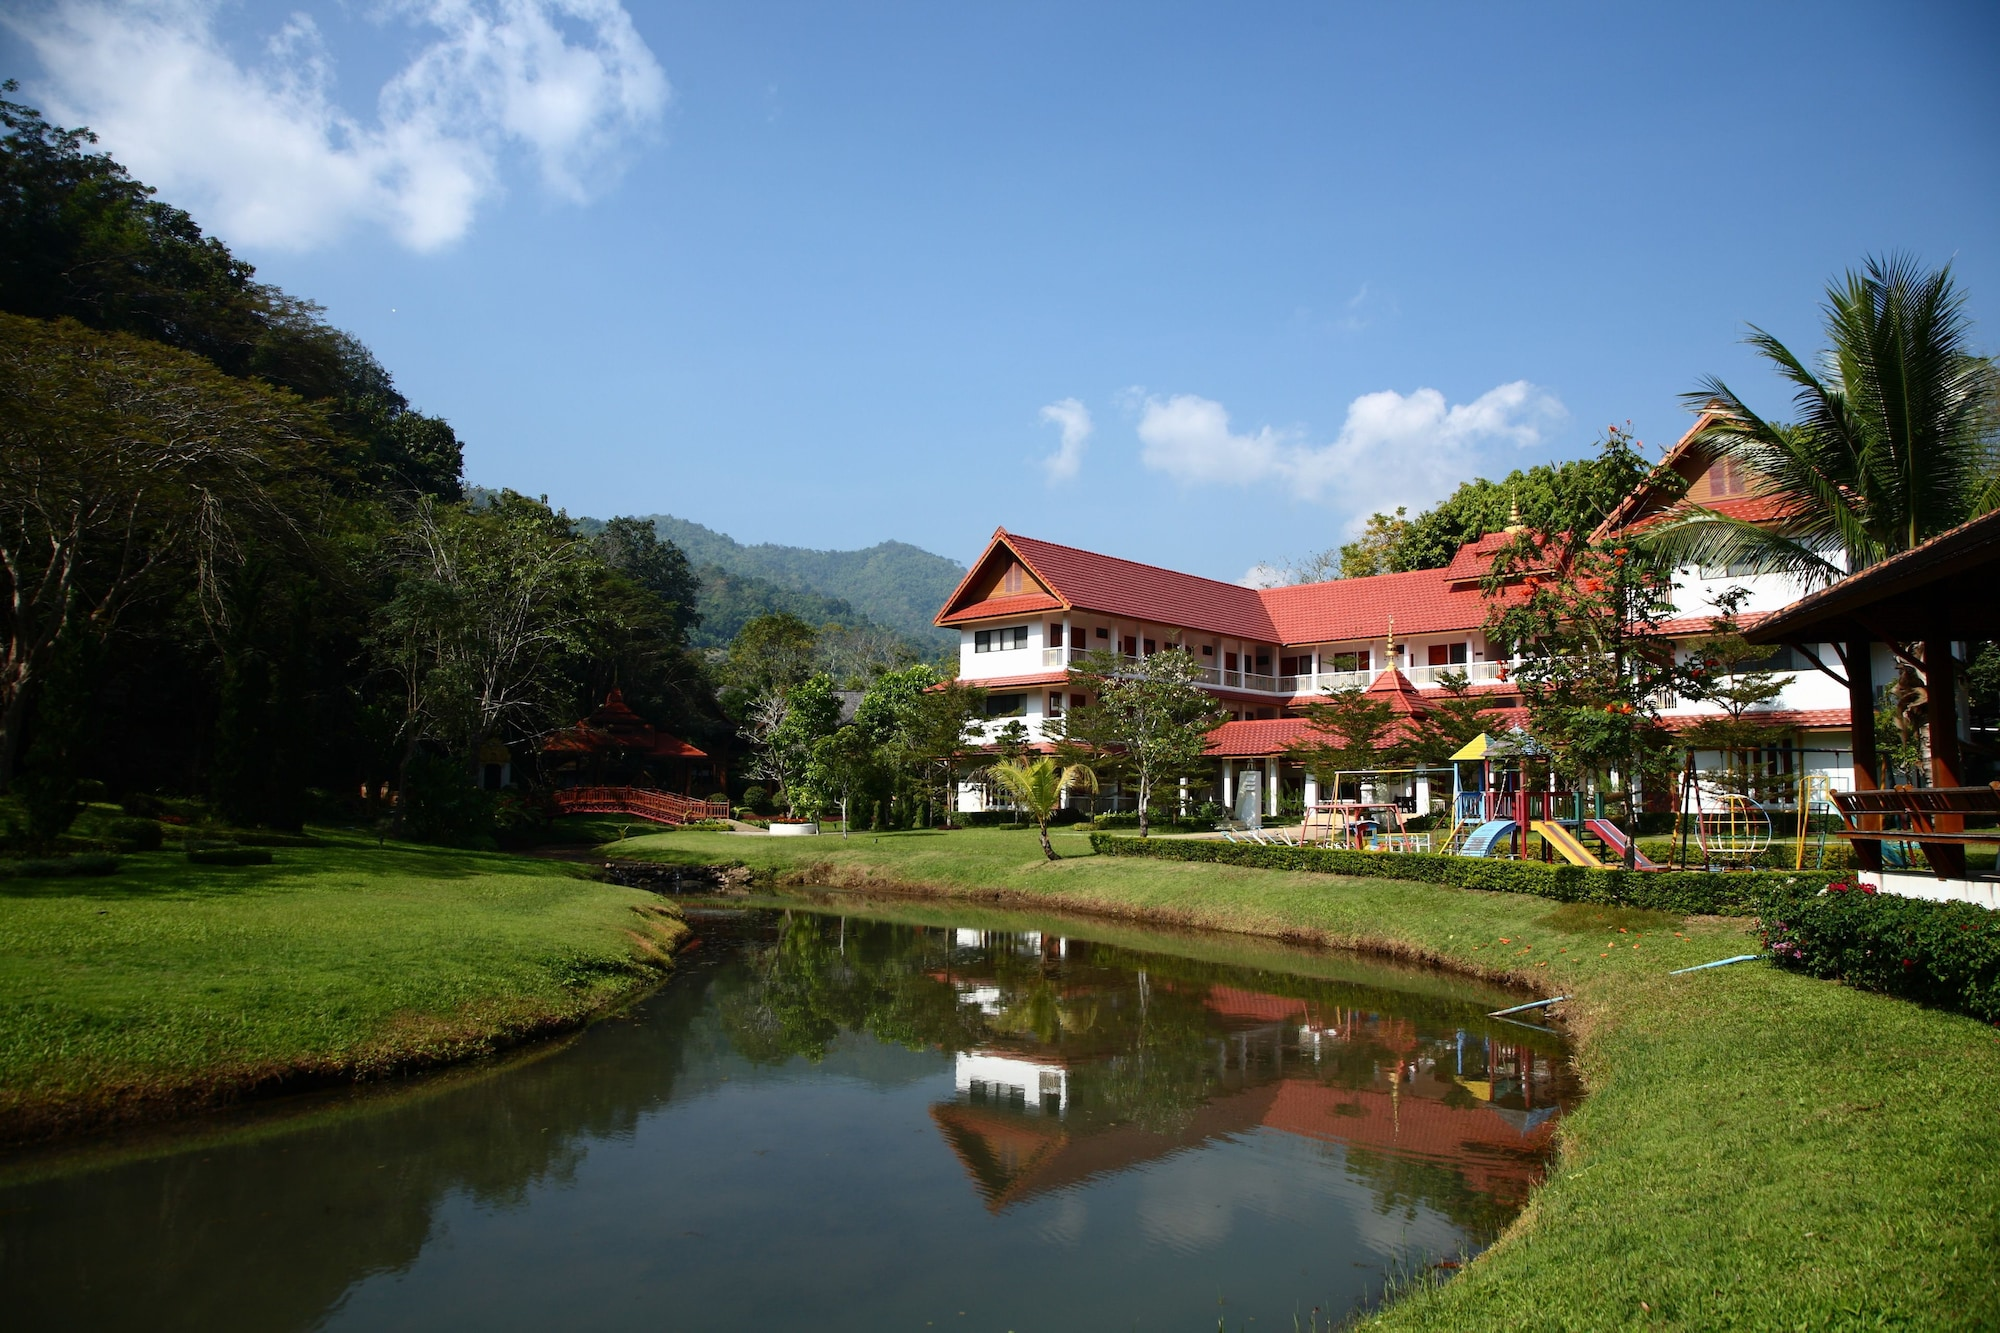 Suan Bua Hotel & Resort, Hang Dong